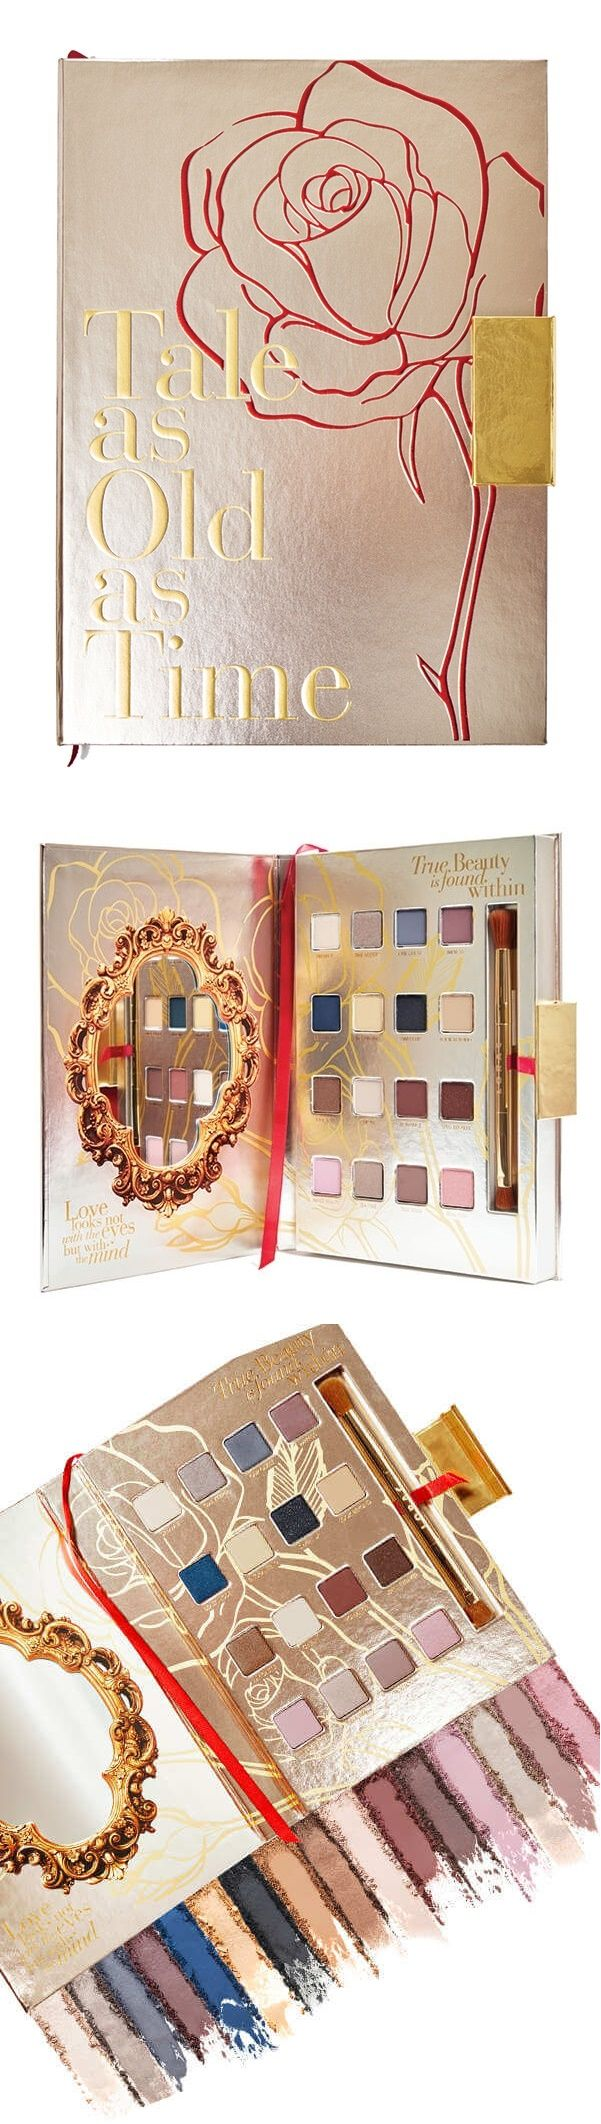 The Lorac Beauty and the Beast Makeup Collection unexpectedly launched today! Who even knew Lorac was doing another Disney collobration because I didn't ha